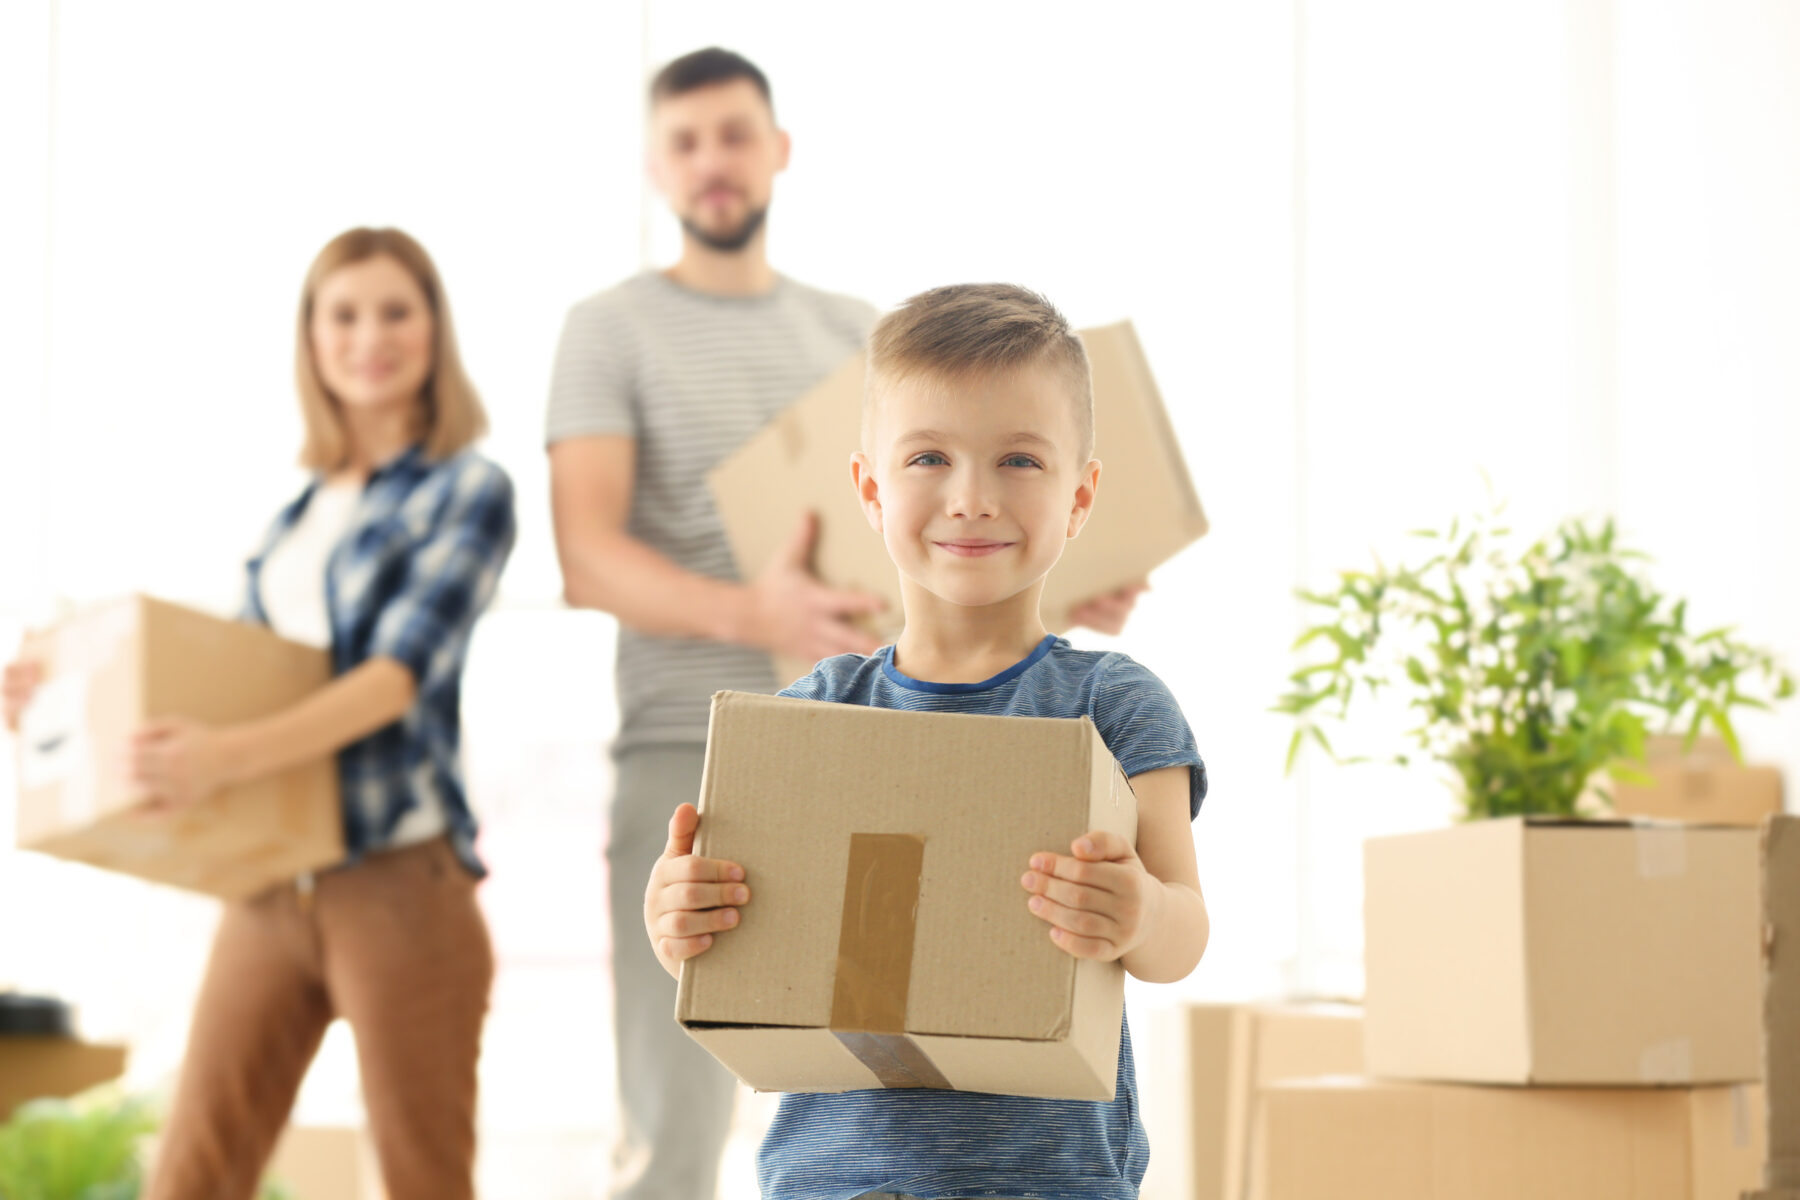 family moving boxes with little boy holding box and smiling at the camera